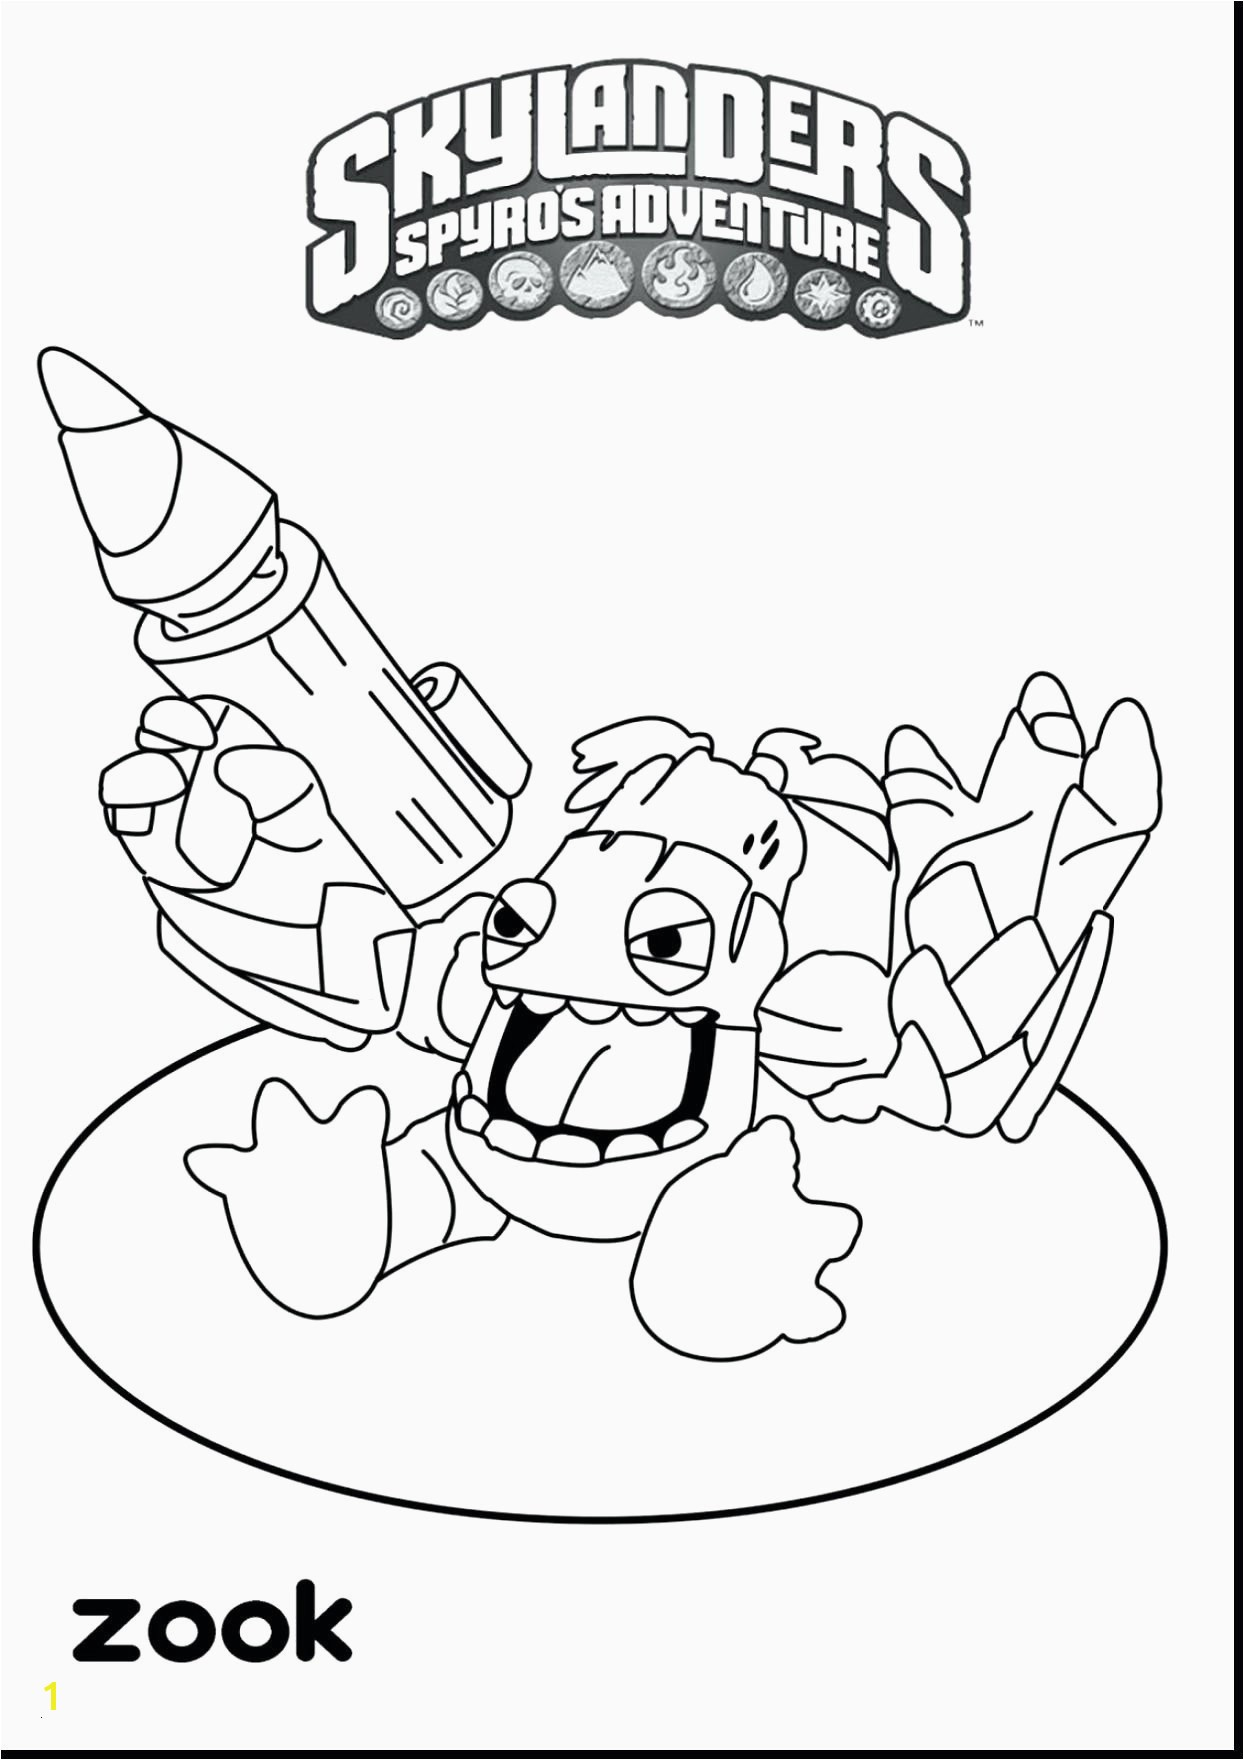 Pesach Coloring Pages Unique Christian Coloring Sheets Coloring Pages